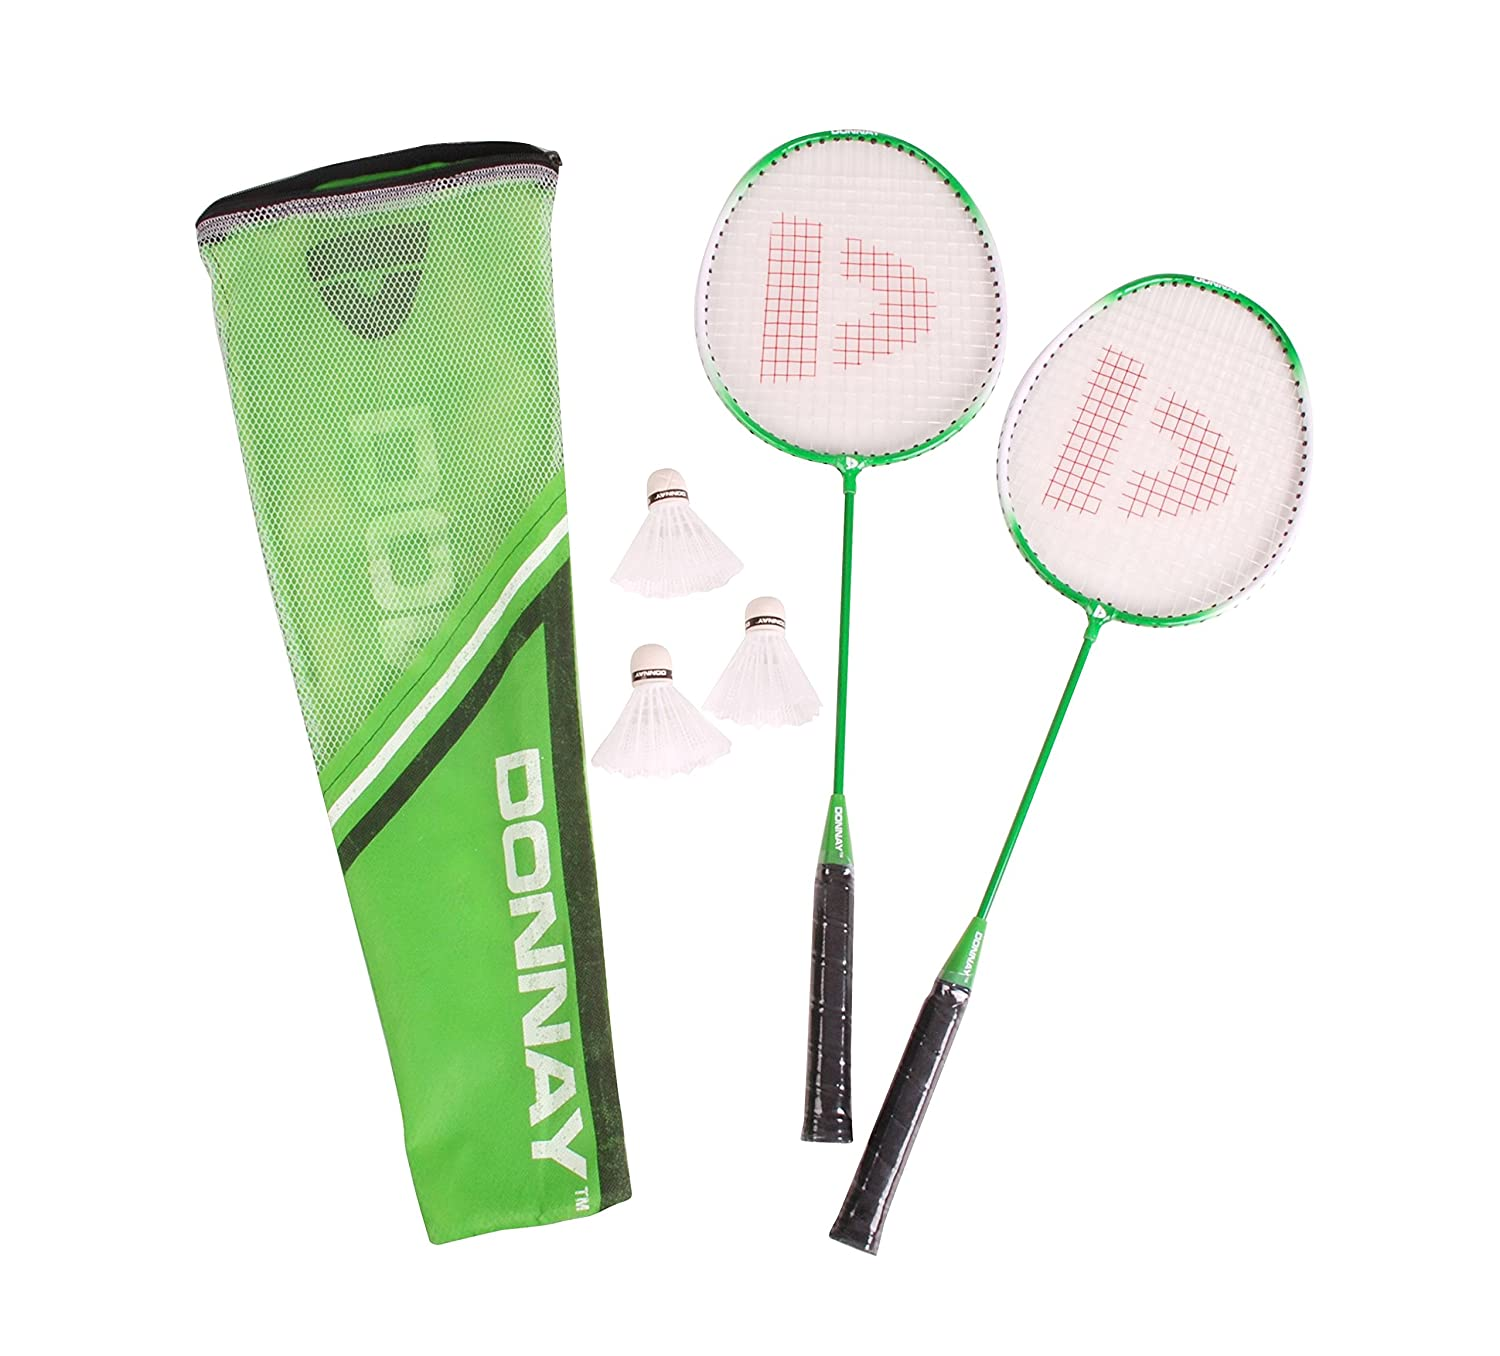 2 Rackets Badminton Set Shuttlecock Incl Carry Bag 2 Player Family Donnay Outdoor Sport Game 41392